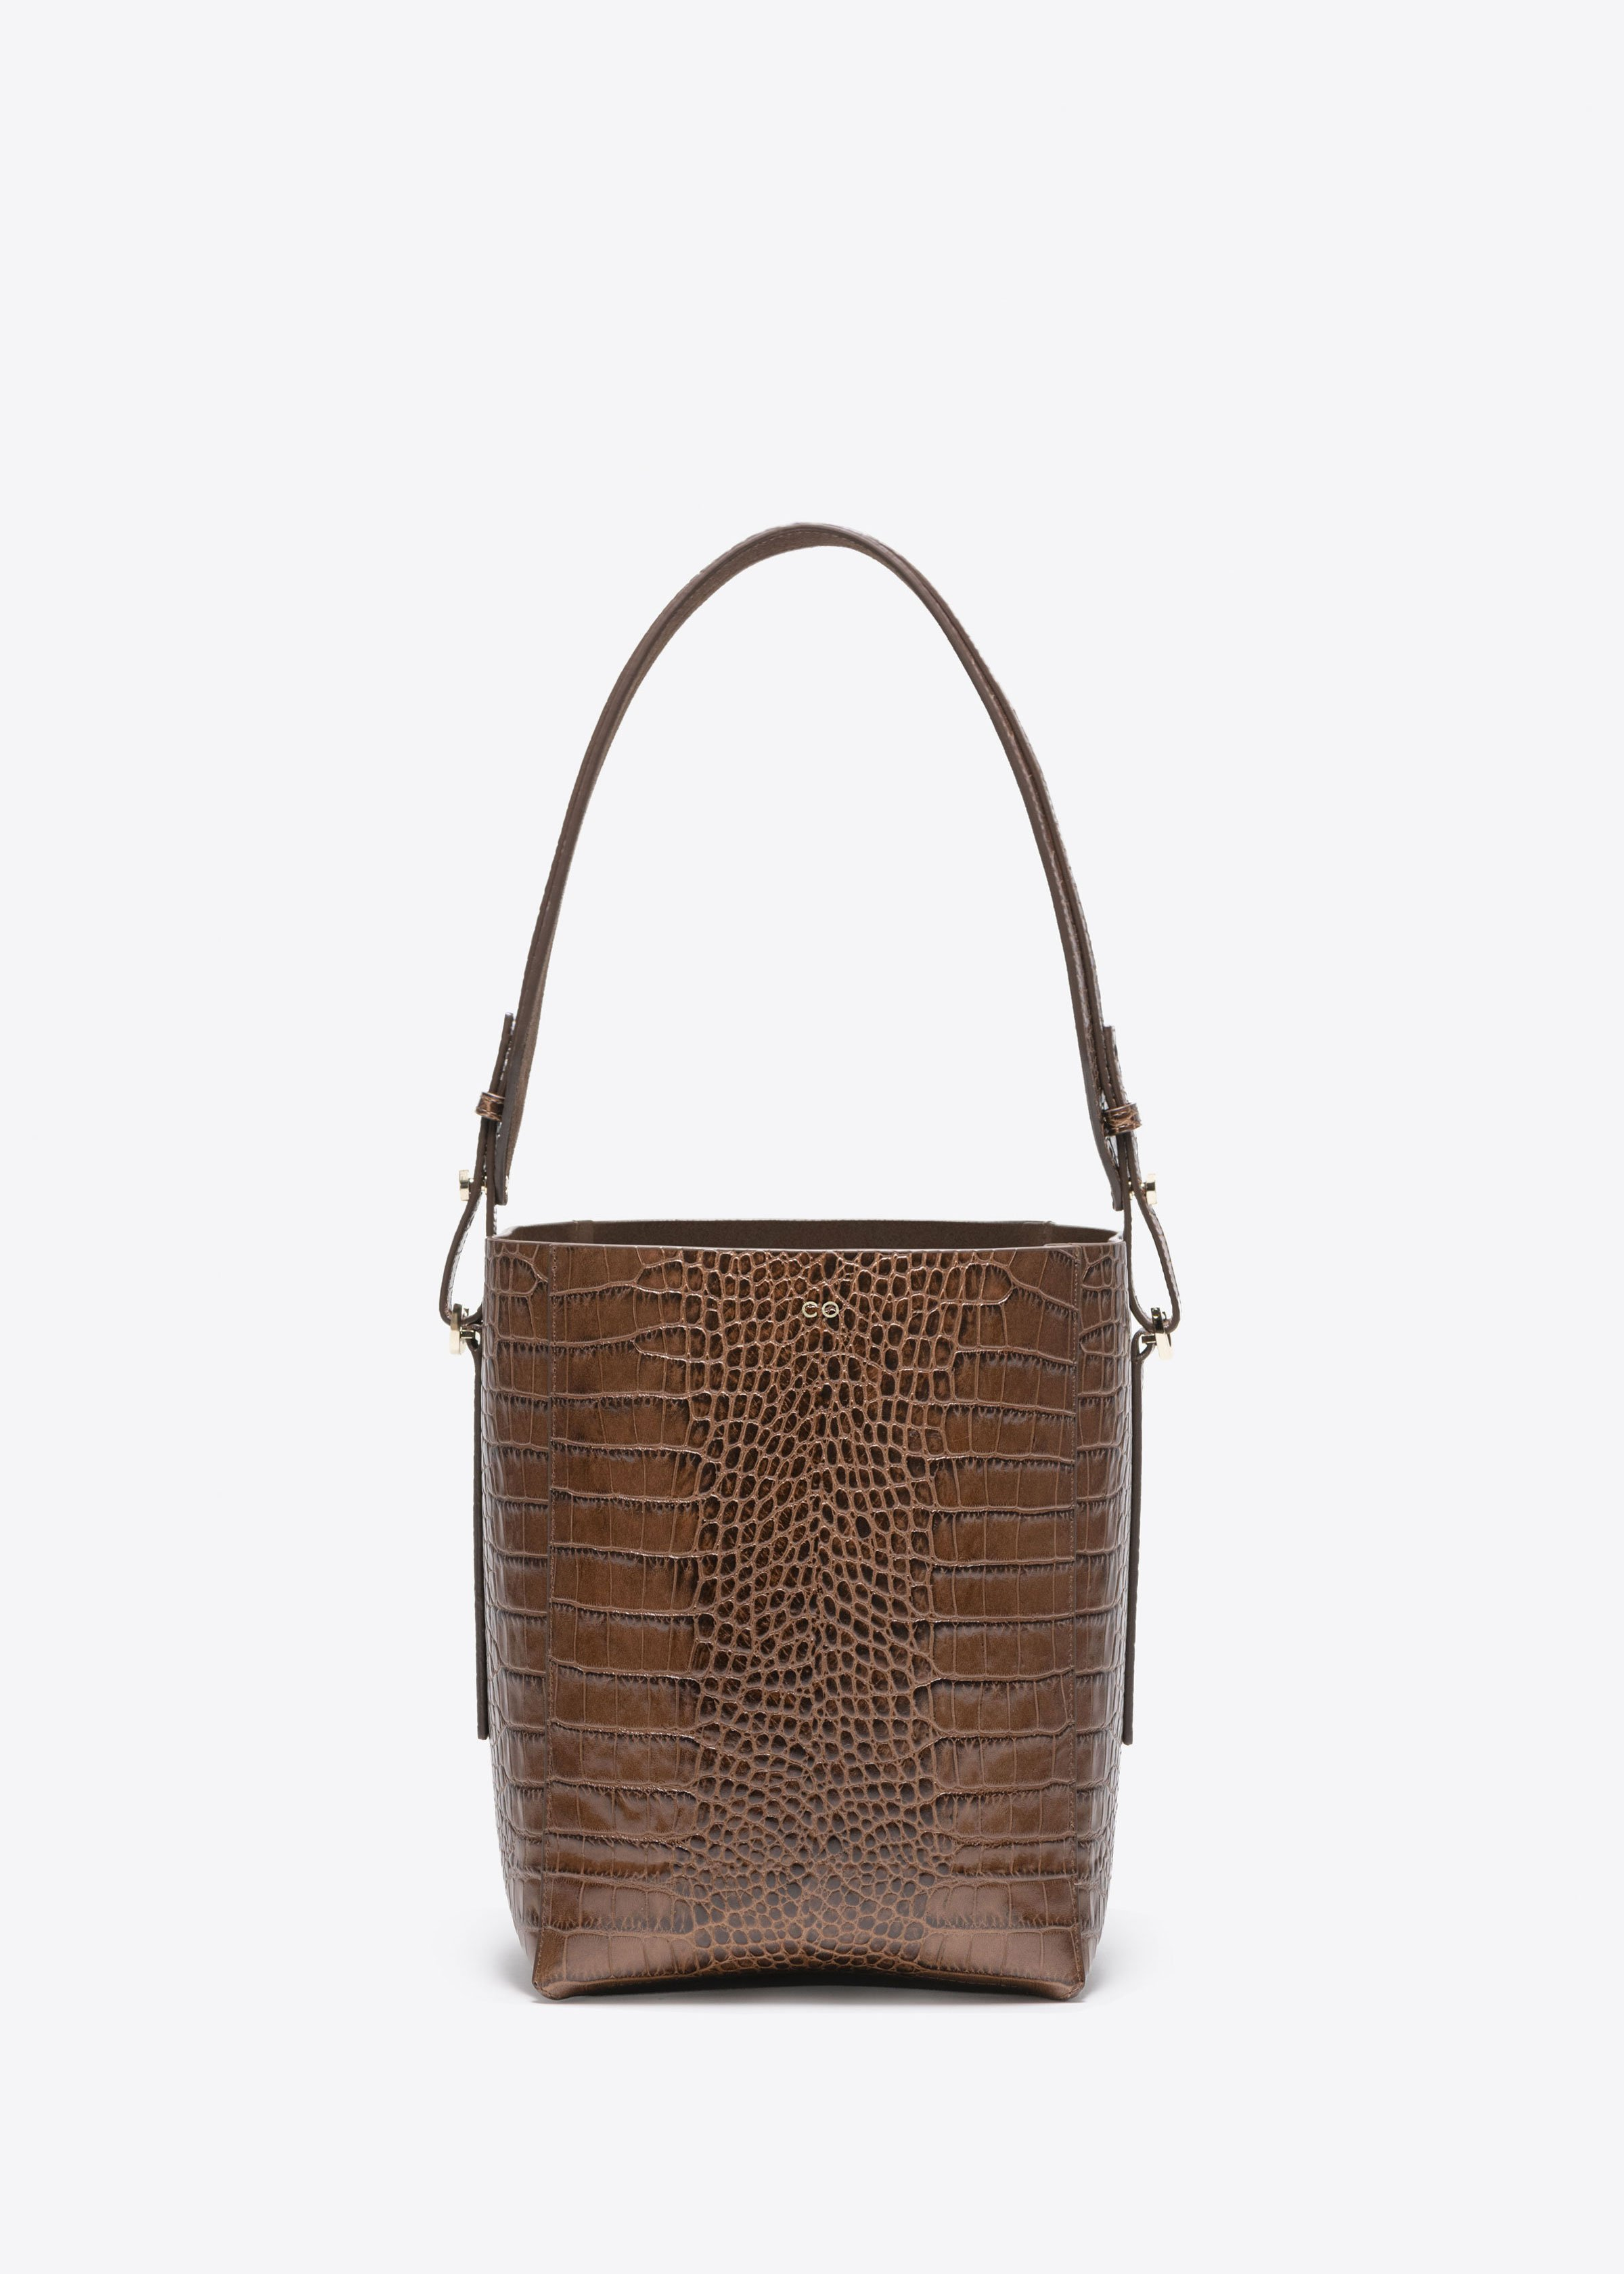 Small Bucket Bag in Embossed Leather in  - Co Collections